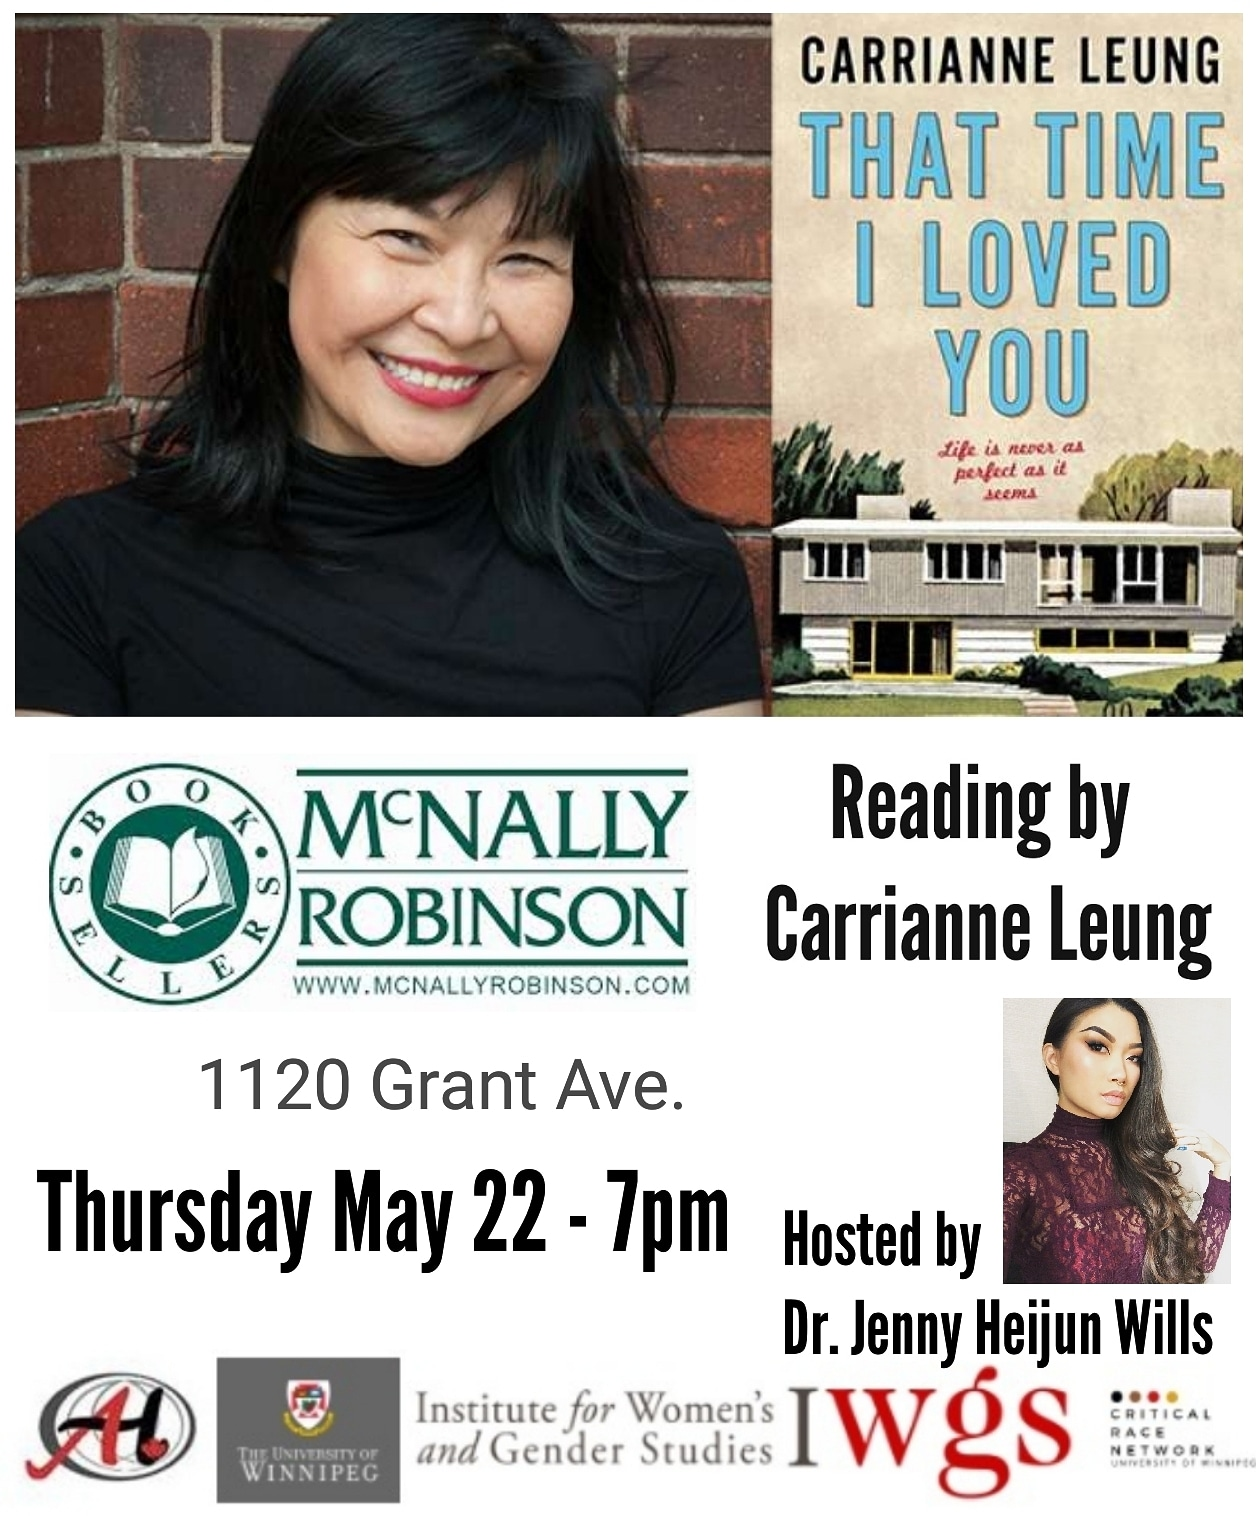 Carrianne Leung in conversation and signing That Time I Loved You McNally Robinson hosted by Dr. Jenny Heijun Wills